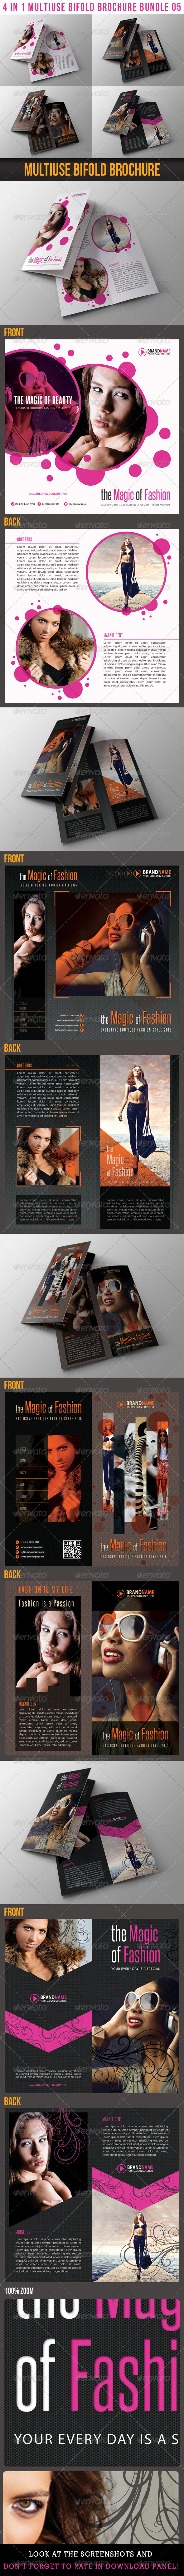 GraphicRiver 4 in 1 Fashion Multiuse Bifold Brochure Bundle 05 6553456